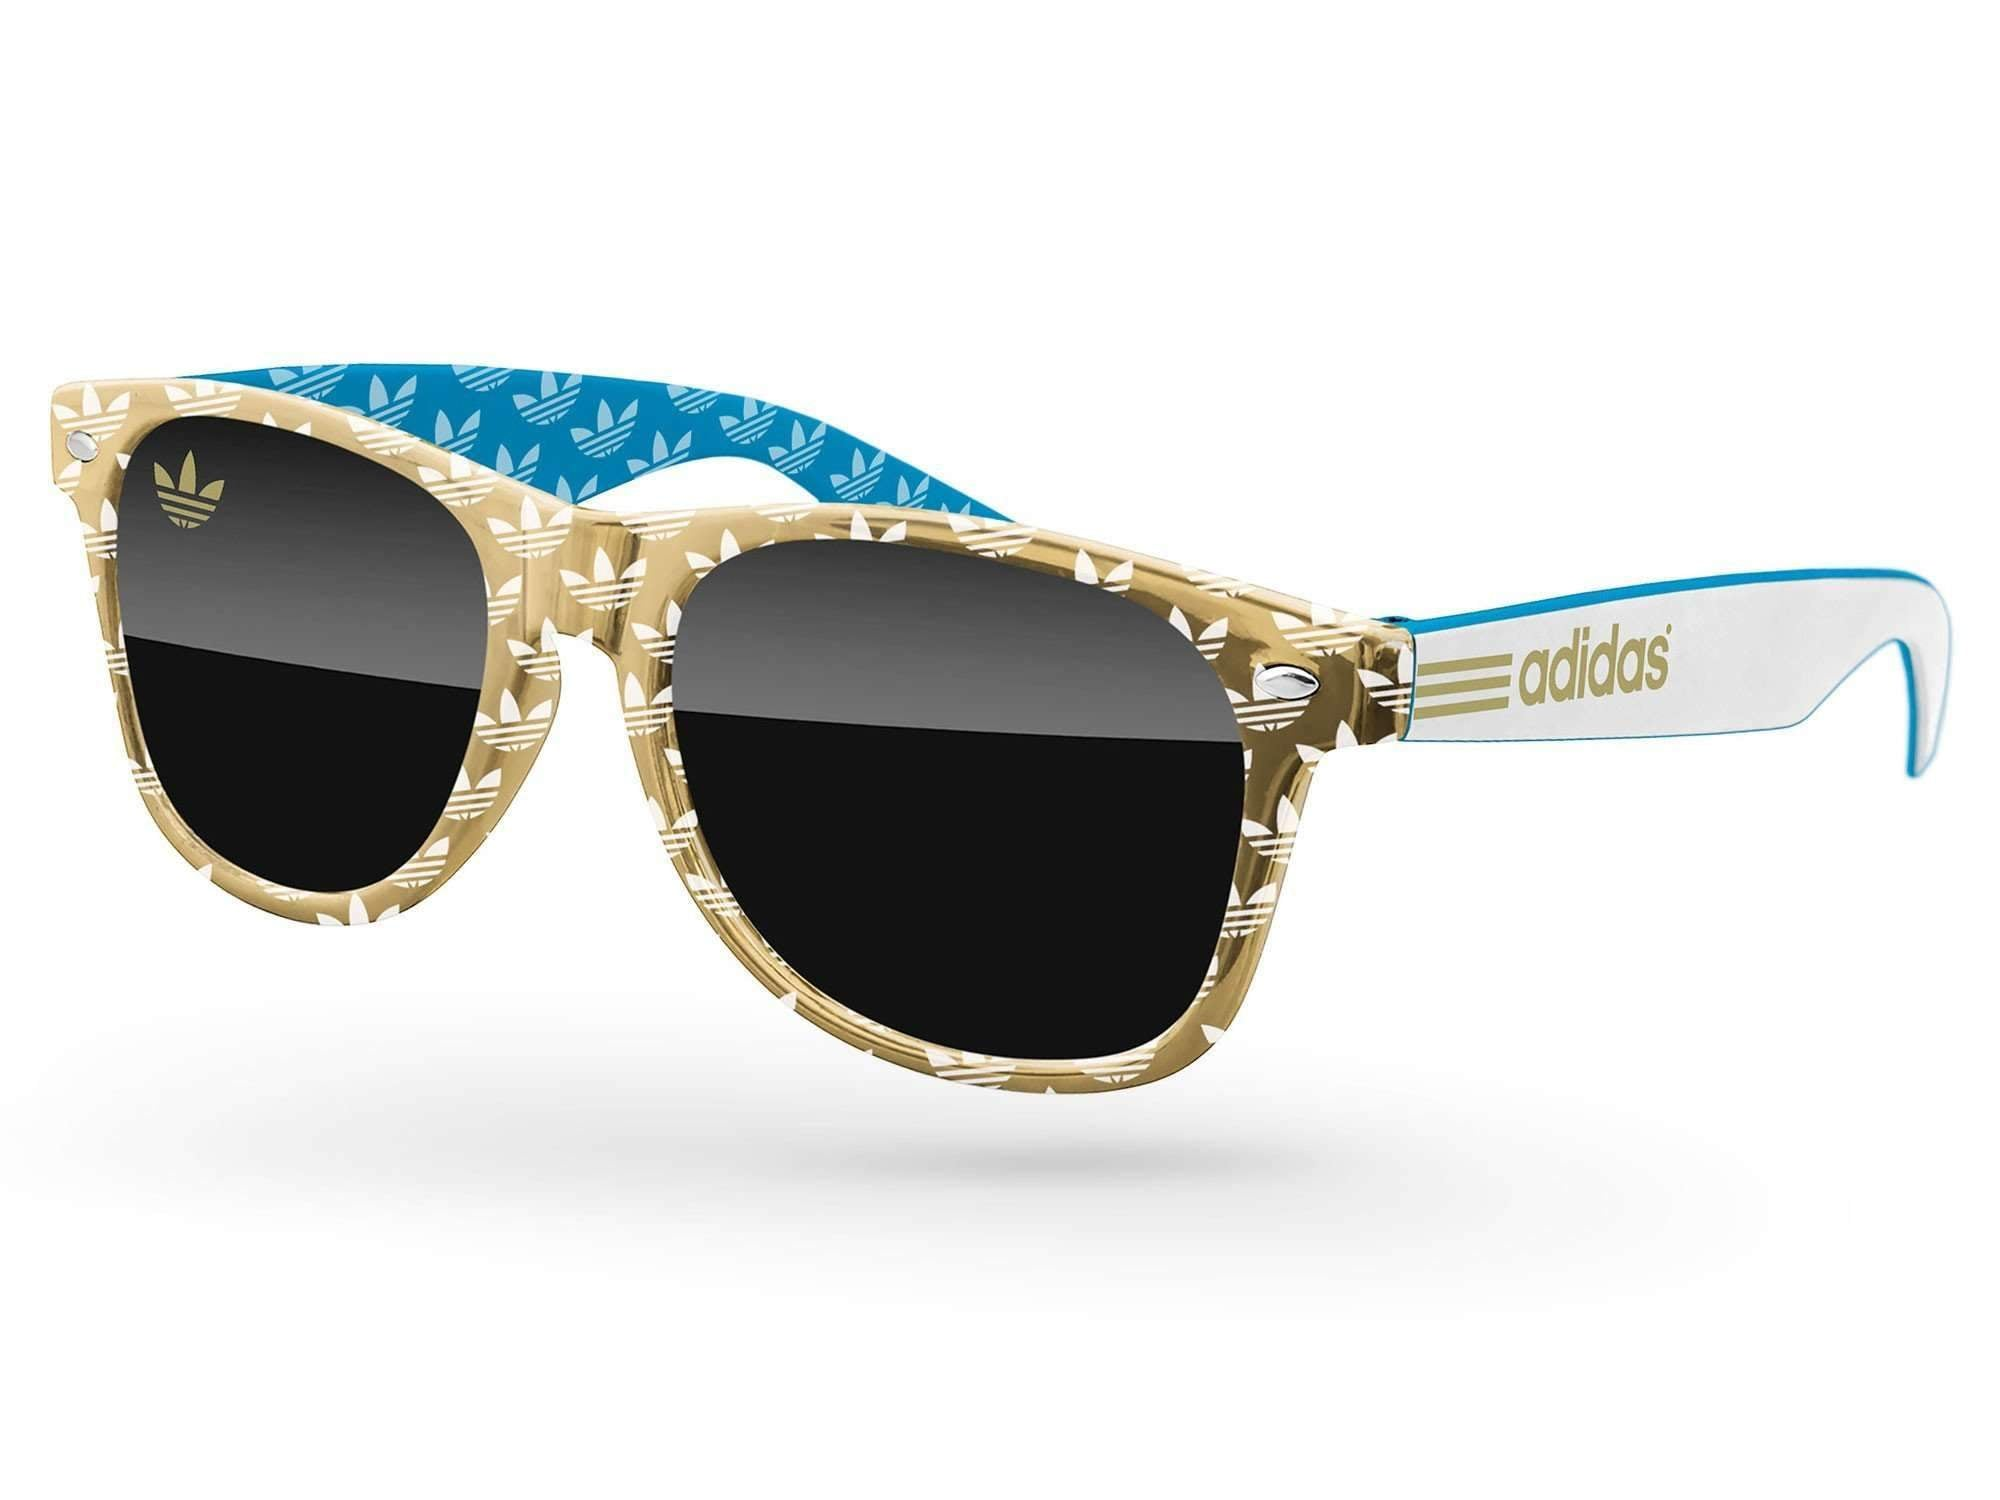 RD533-M - 3-tone Metallic Retro Promotional Sunglasses w/ 1-color lens imprint & 1-color extended temple imprint